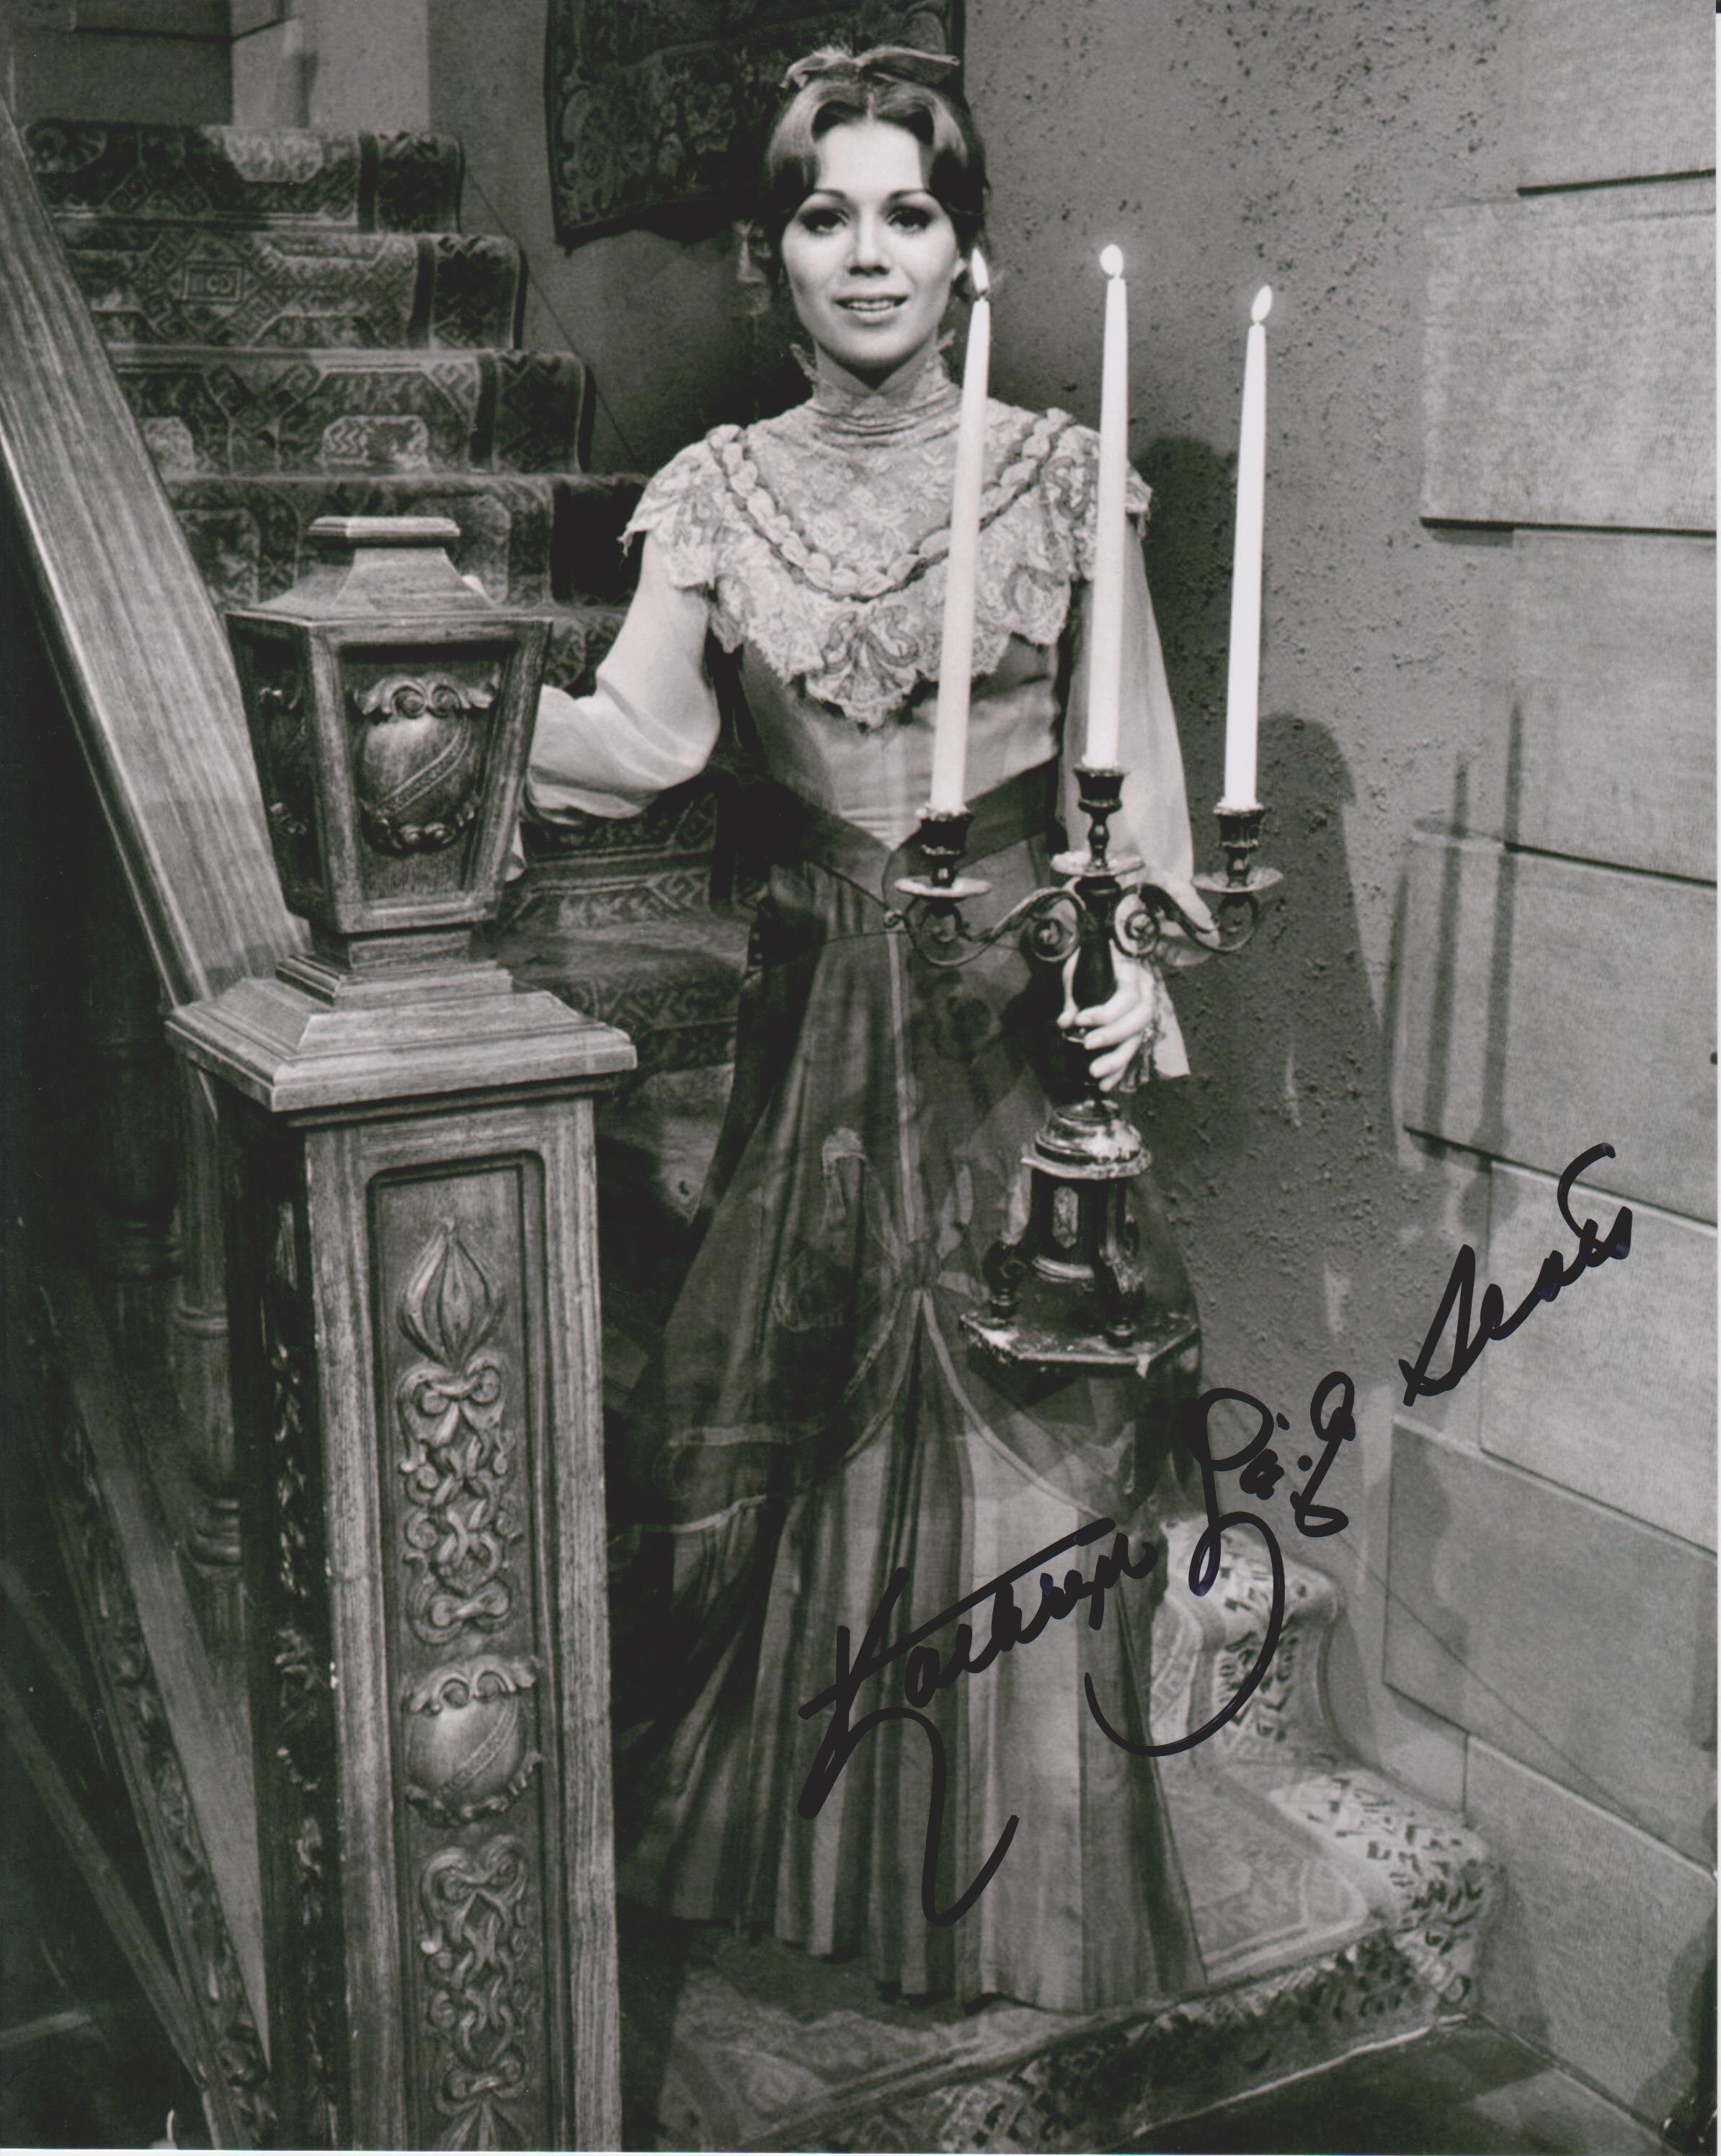 Forum on this topic: Geraldine Chaplin (born 1944 (born in Santa Monica, California, United States), kathryn-leigh-scott/